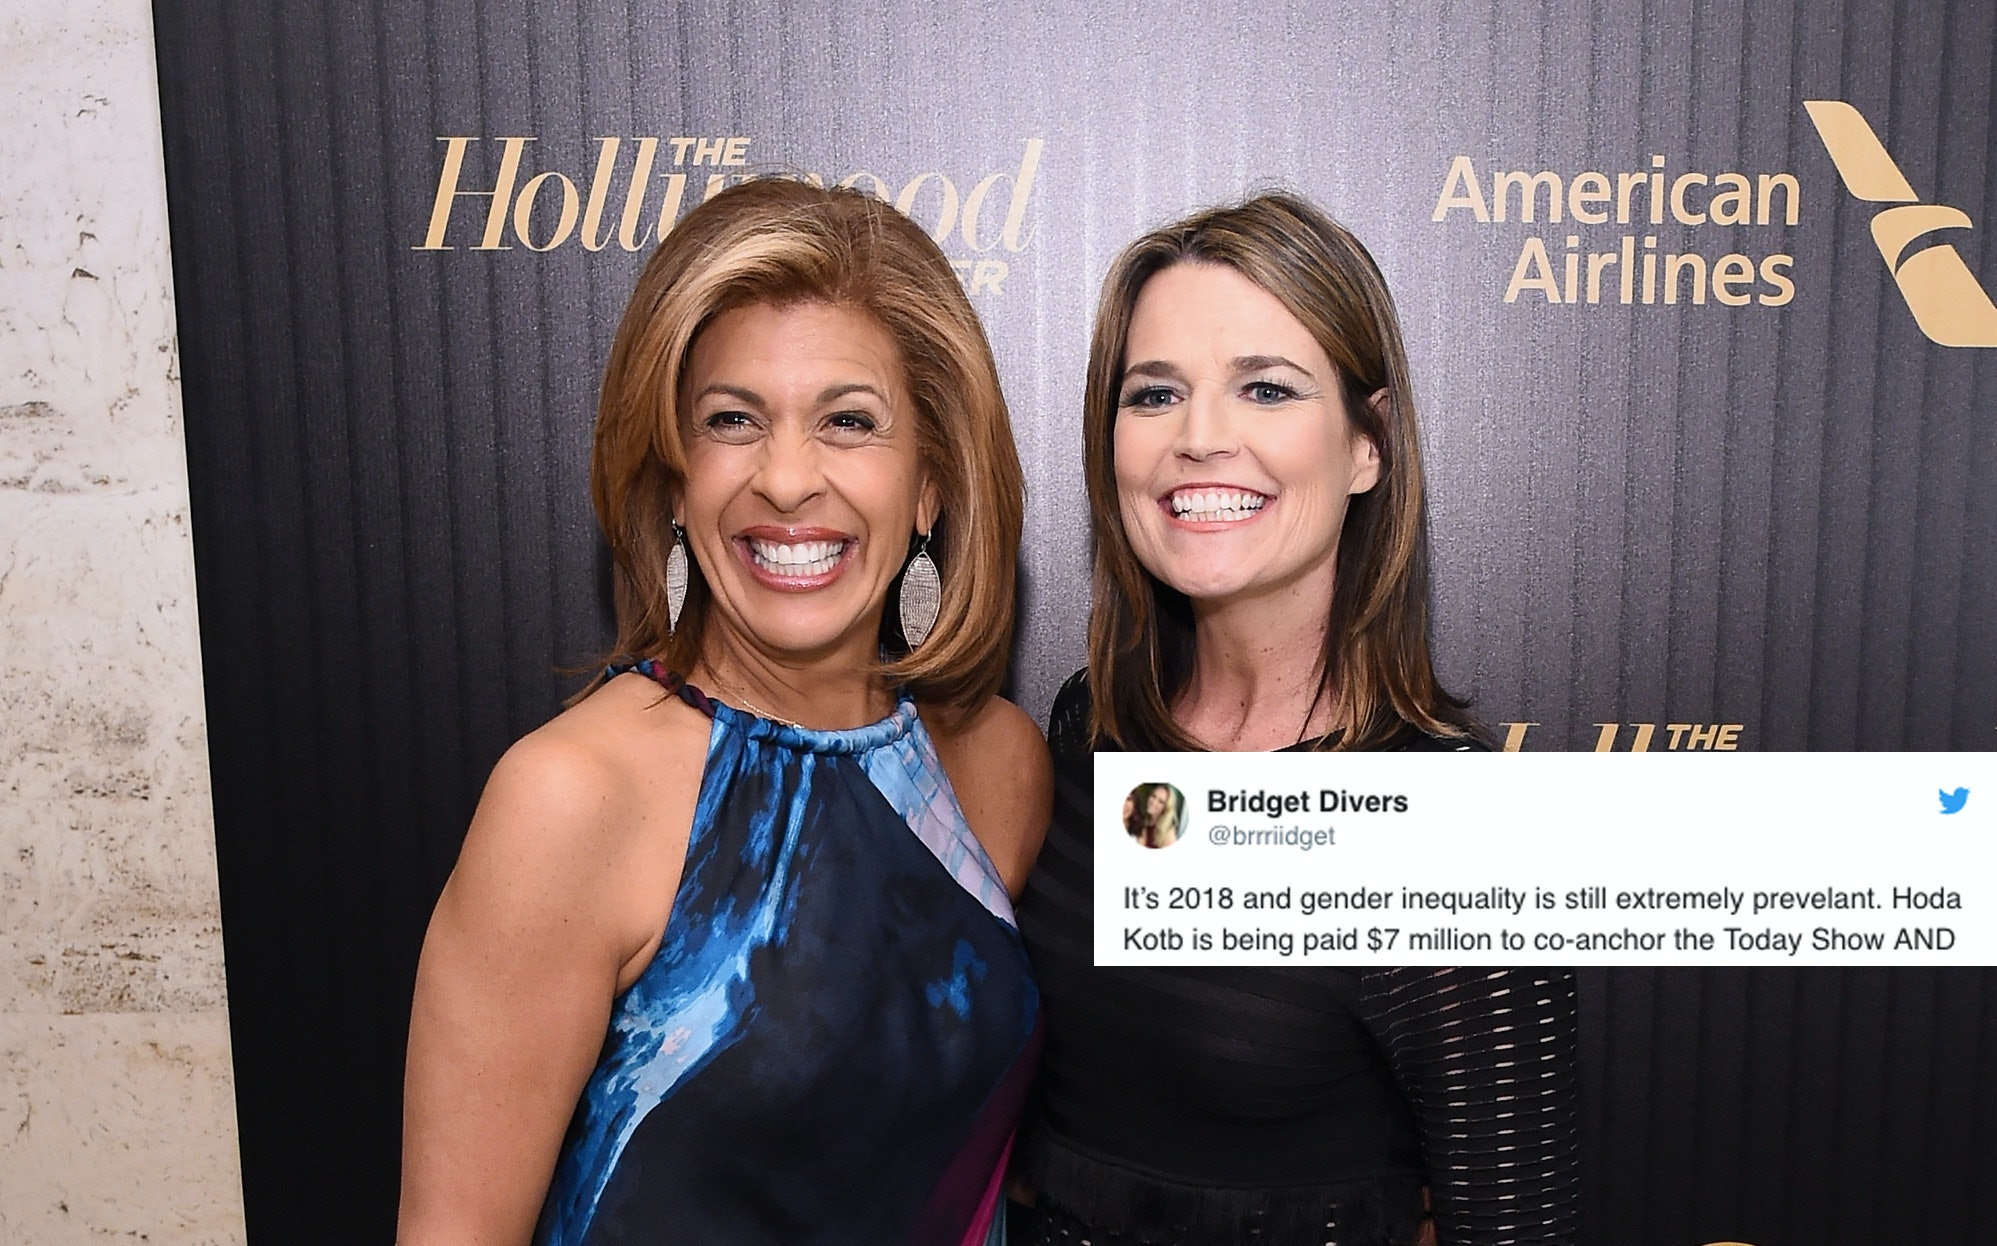 Hoda Kotb Savannah Guthrie S Combined Salaries Are Reportedly Way Less Than Matt Lauer S